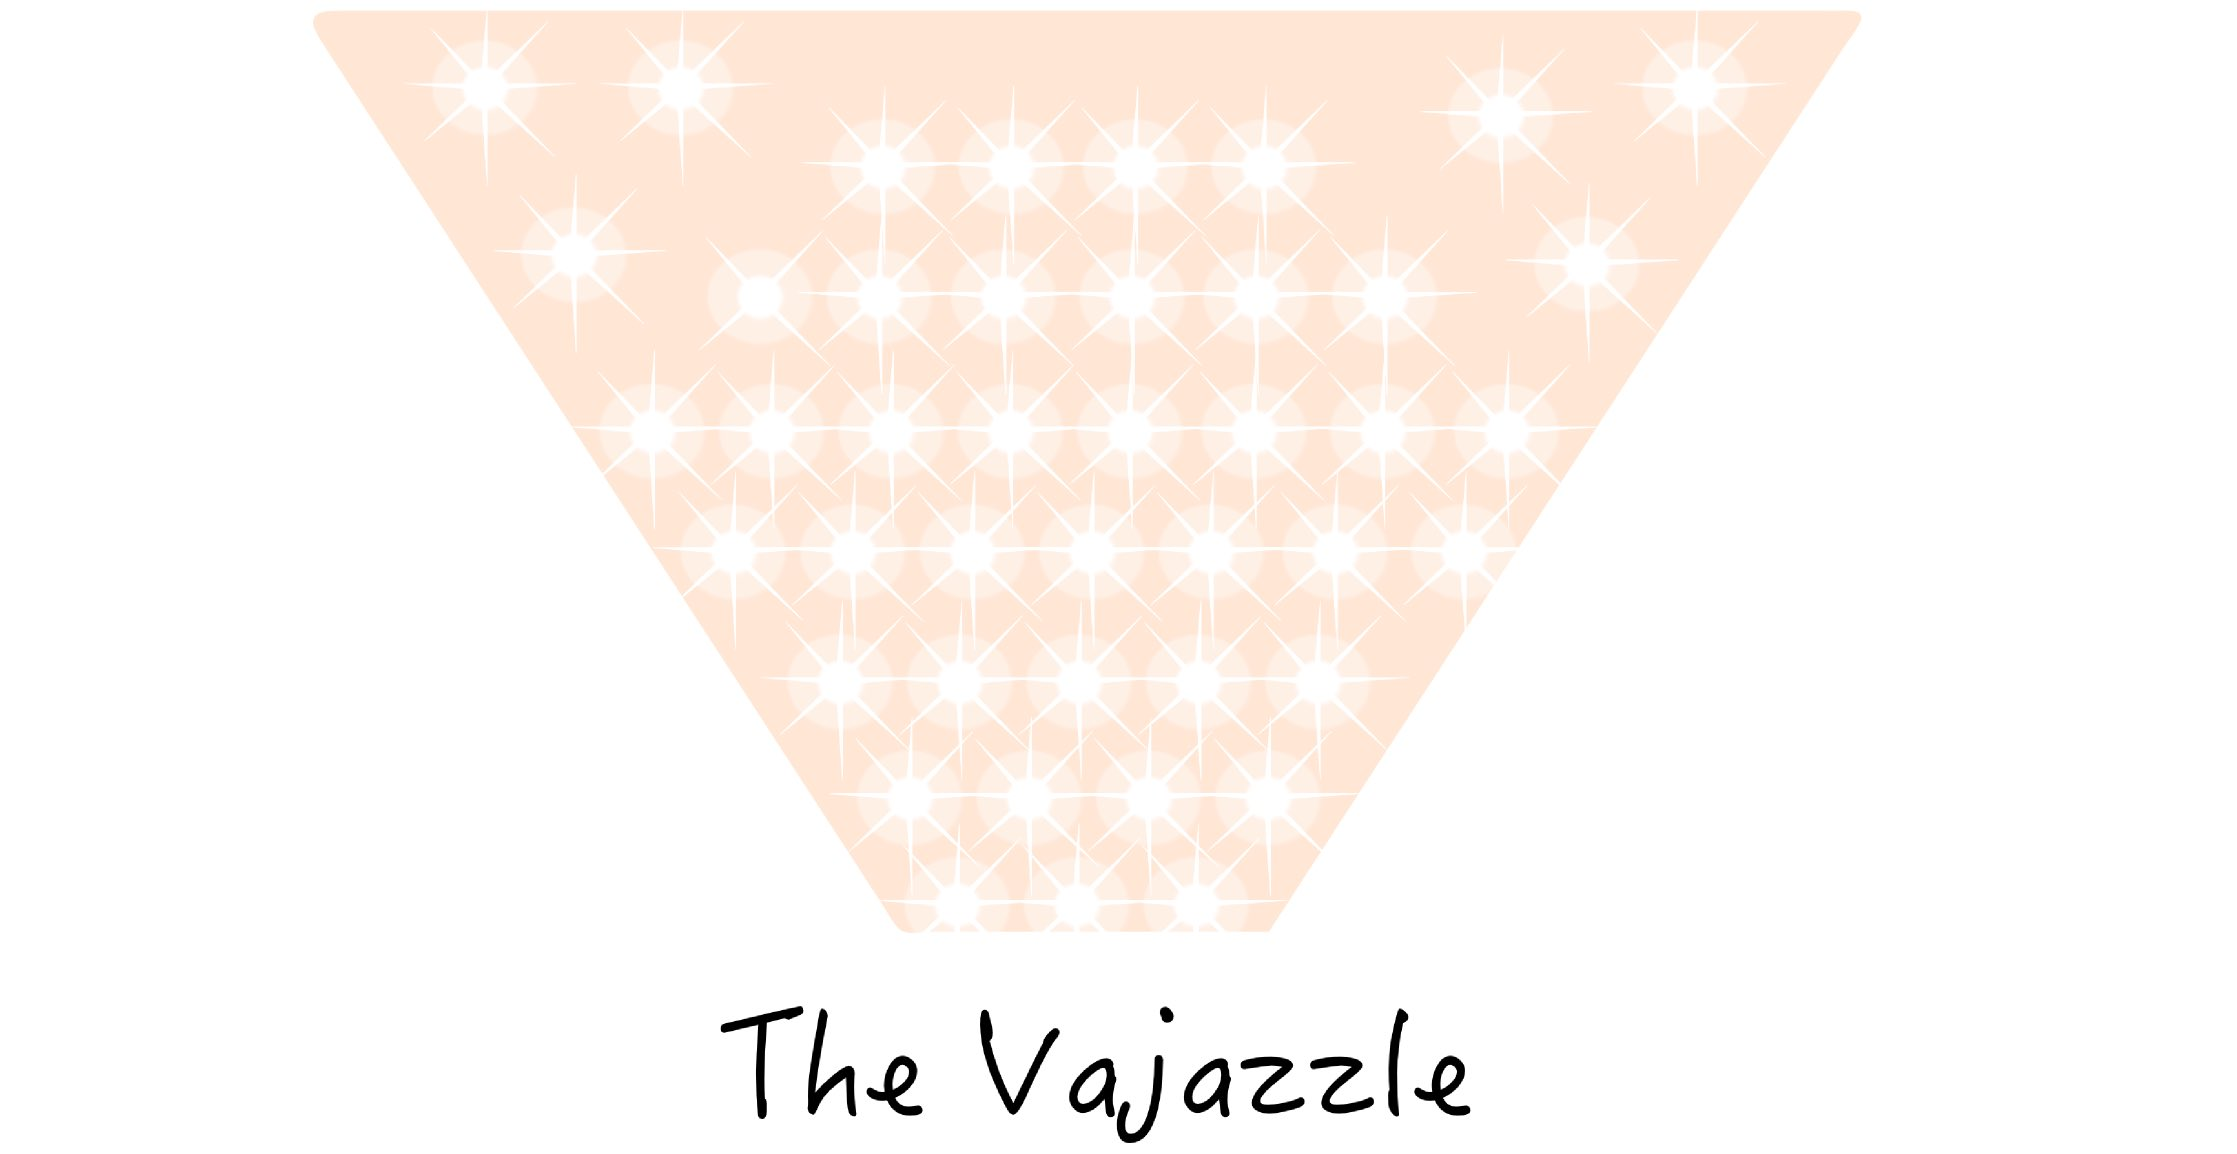 Pubic Hair Styles The Vajazzle